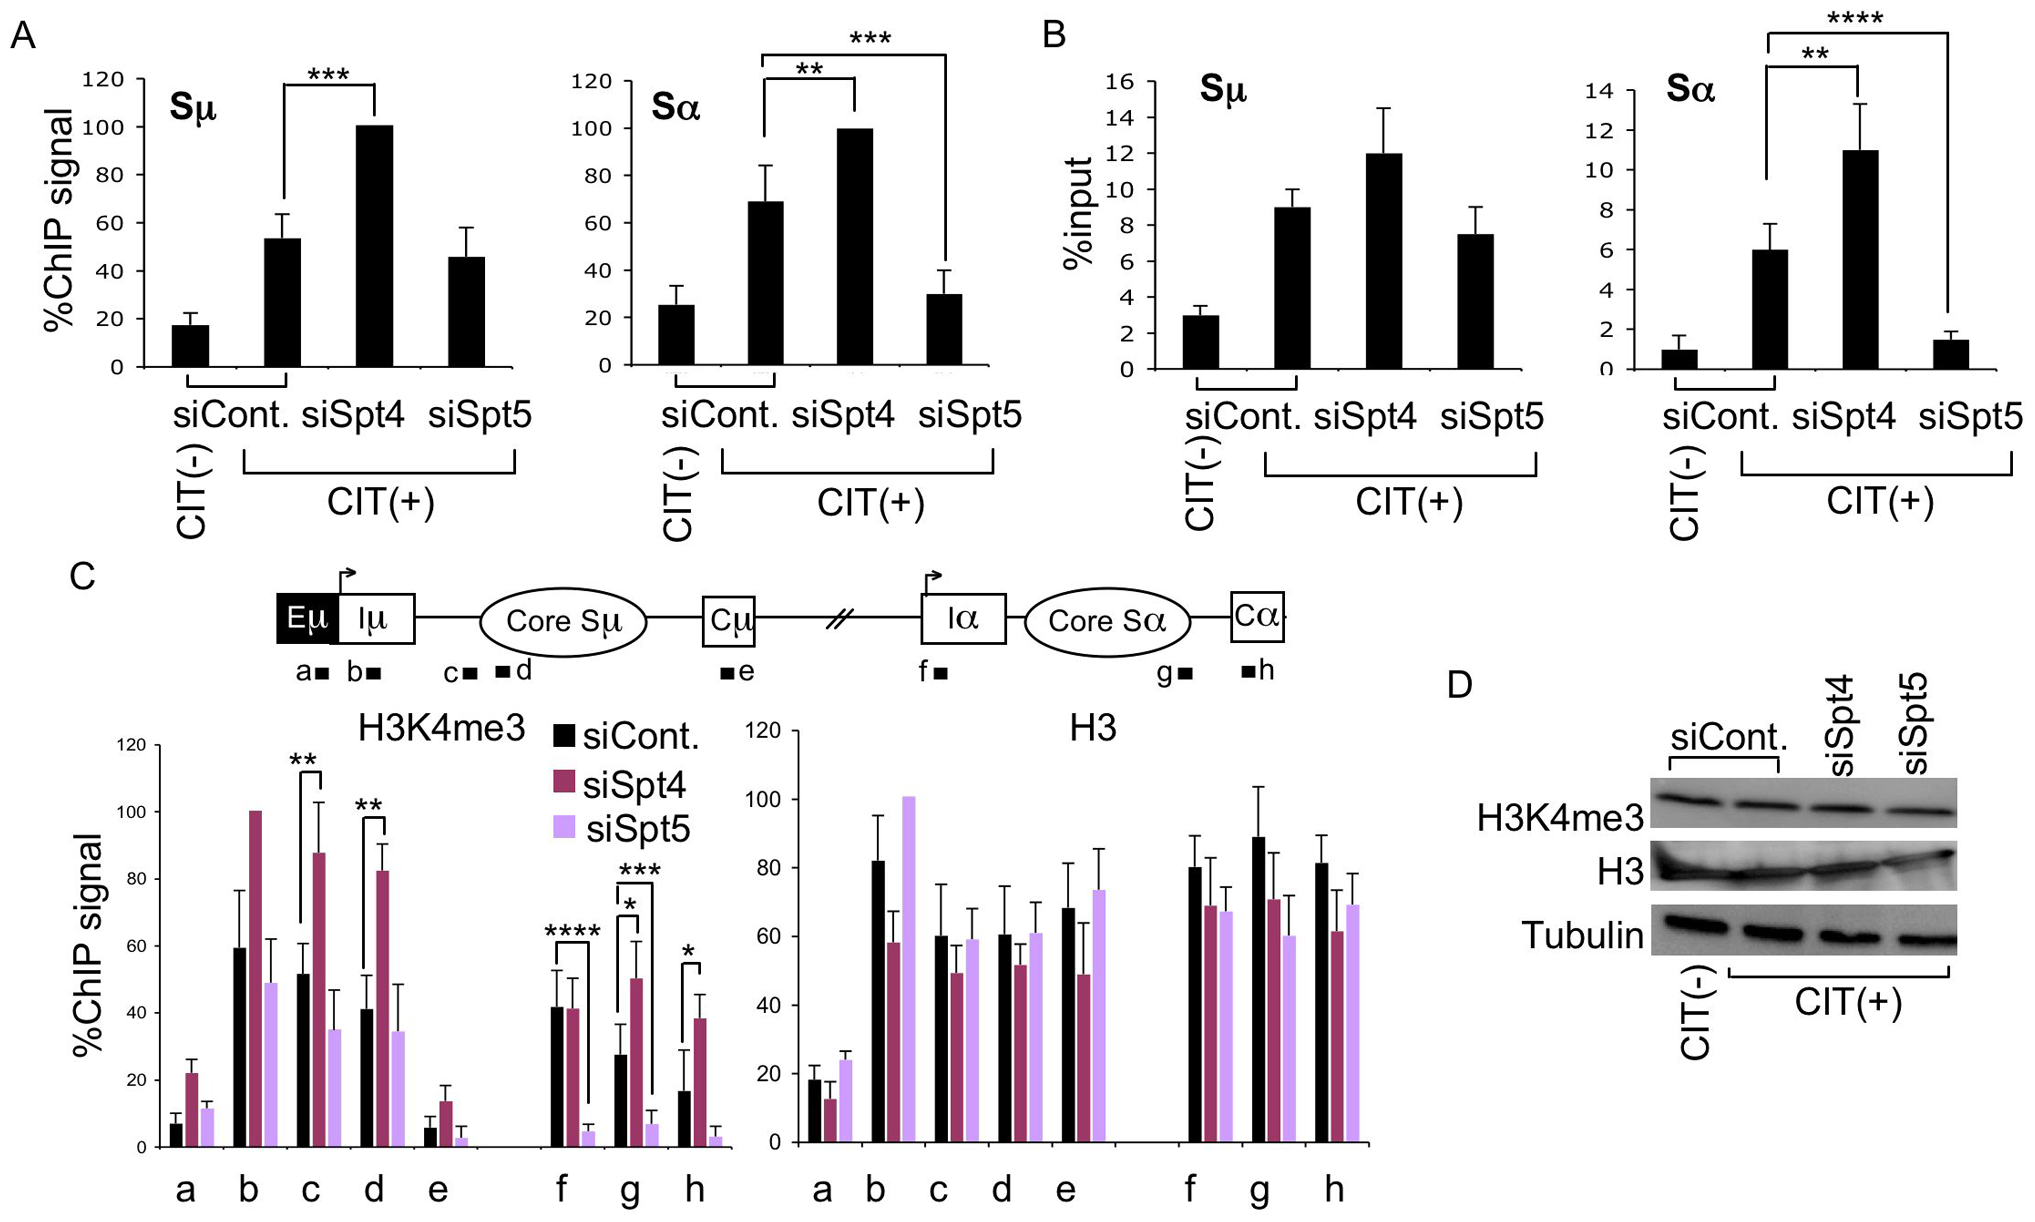 Spt4 and Spt5 differentially control S region DNA cleavage and H3K4me3 status.